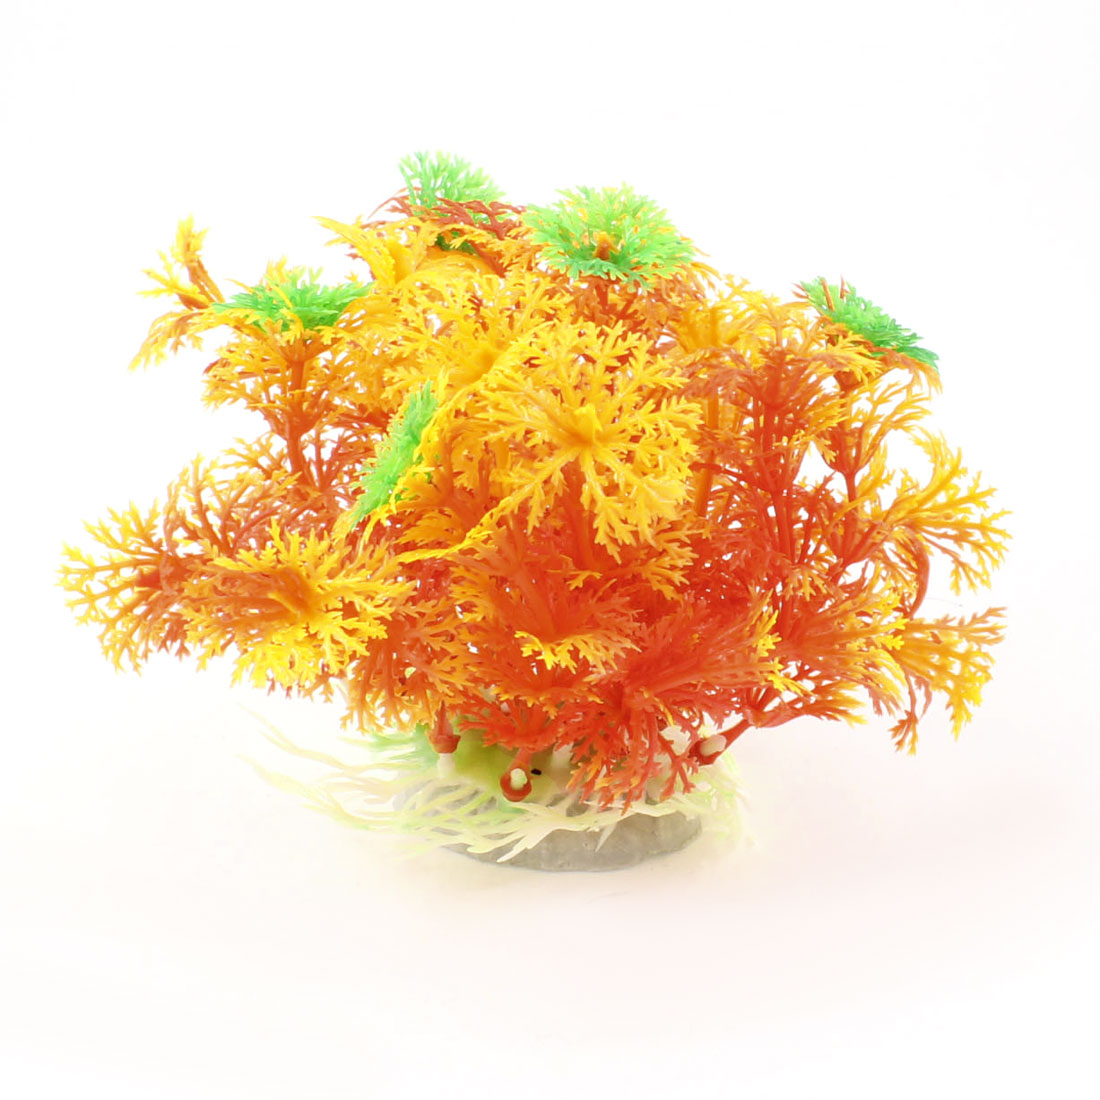 Aquascaping Ornament Yellow Orange Manmade Fish Tnak Water Grass Plants 2.3""